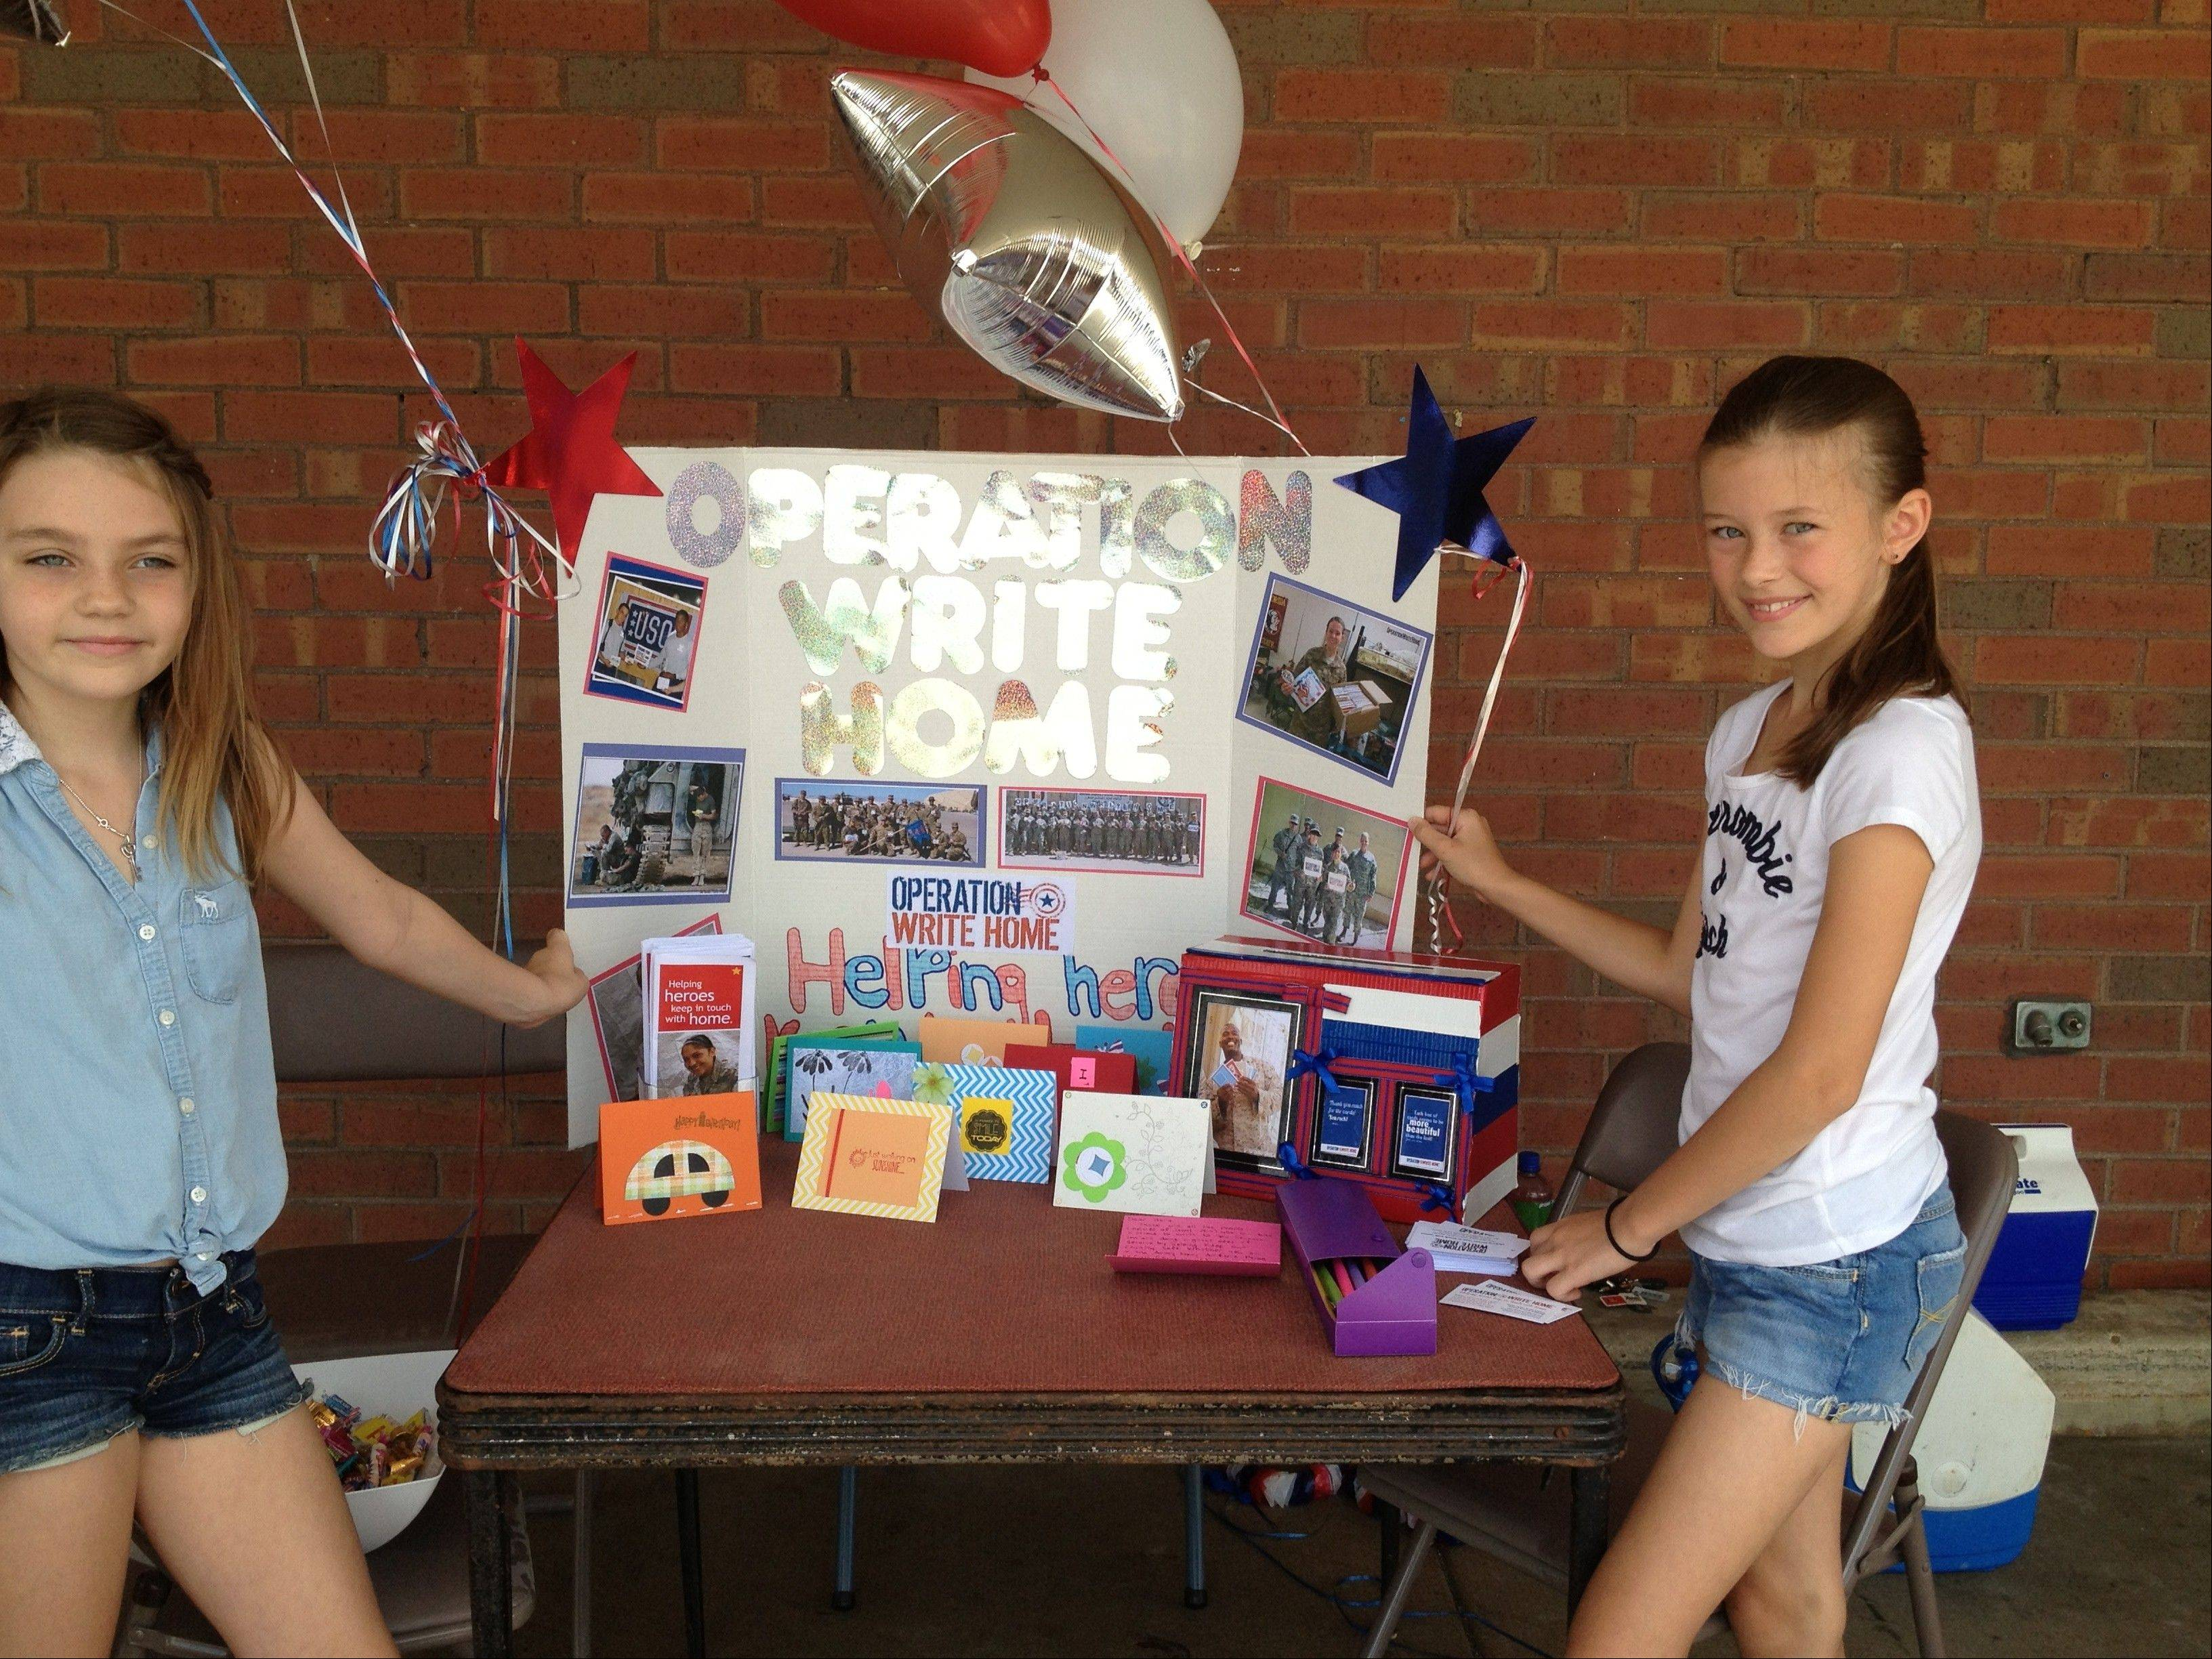 Gianna Greco, left, and Olivia Messerges, both 10-year-olds from Hoffman Estates, have spent time this summer creating blank cards as part of Operation Write Home. The cards are sent to military personnel overseas, who then can use them to write to their families back home.